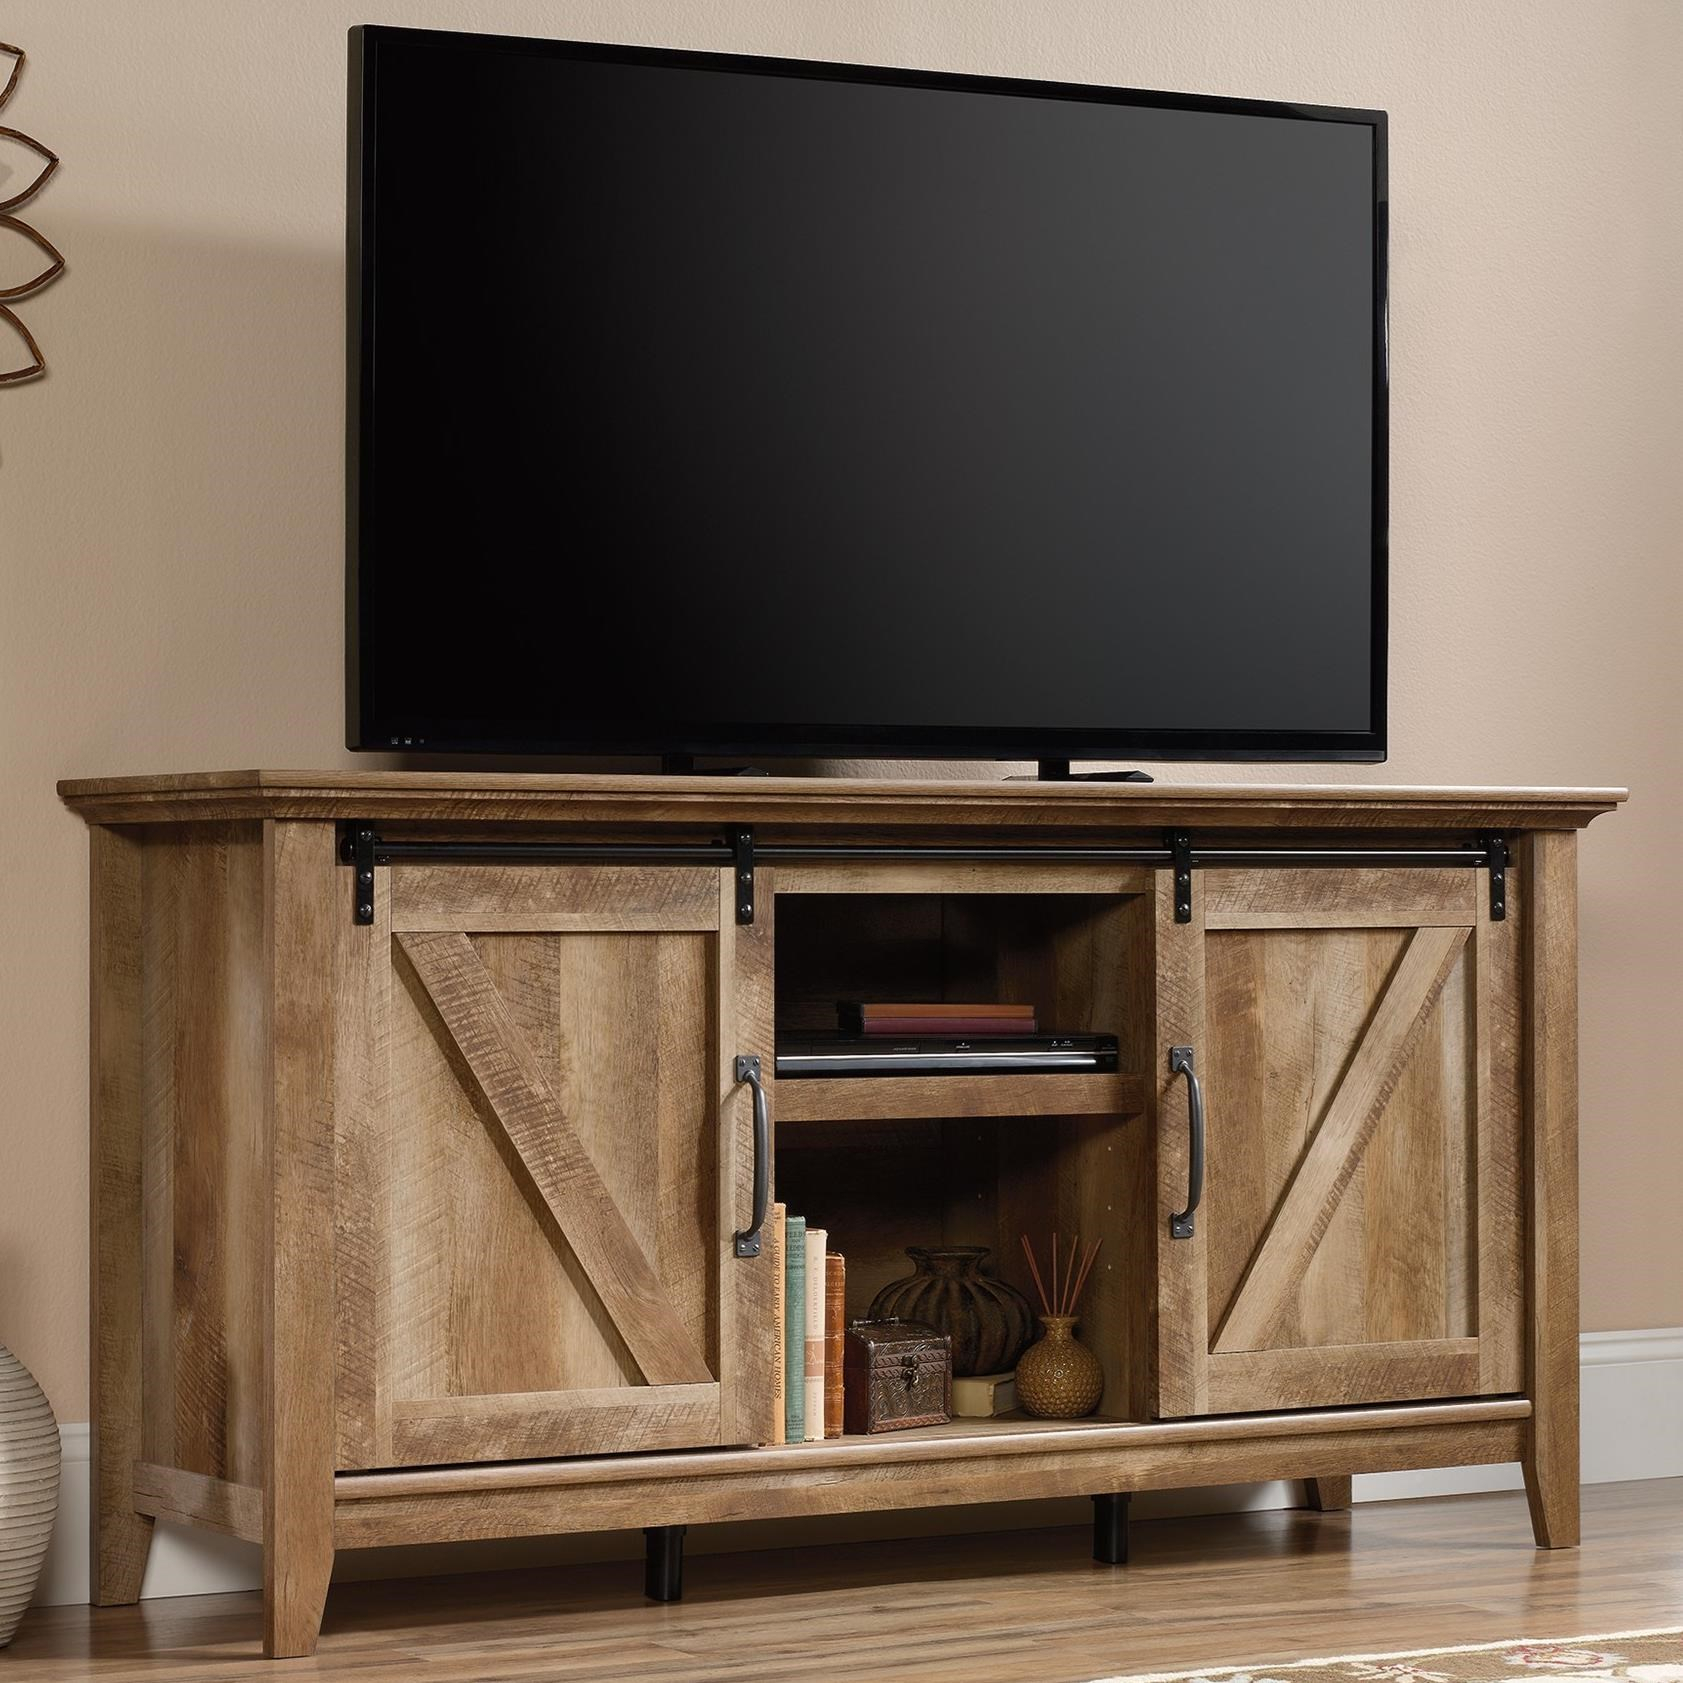 Tv Stands | Darvin Furniture Within Draper 62 Inch Tv Stands (View 6 of 30)